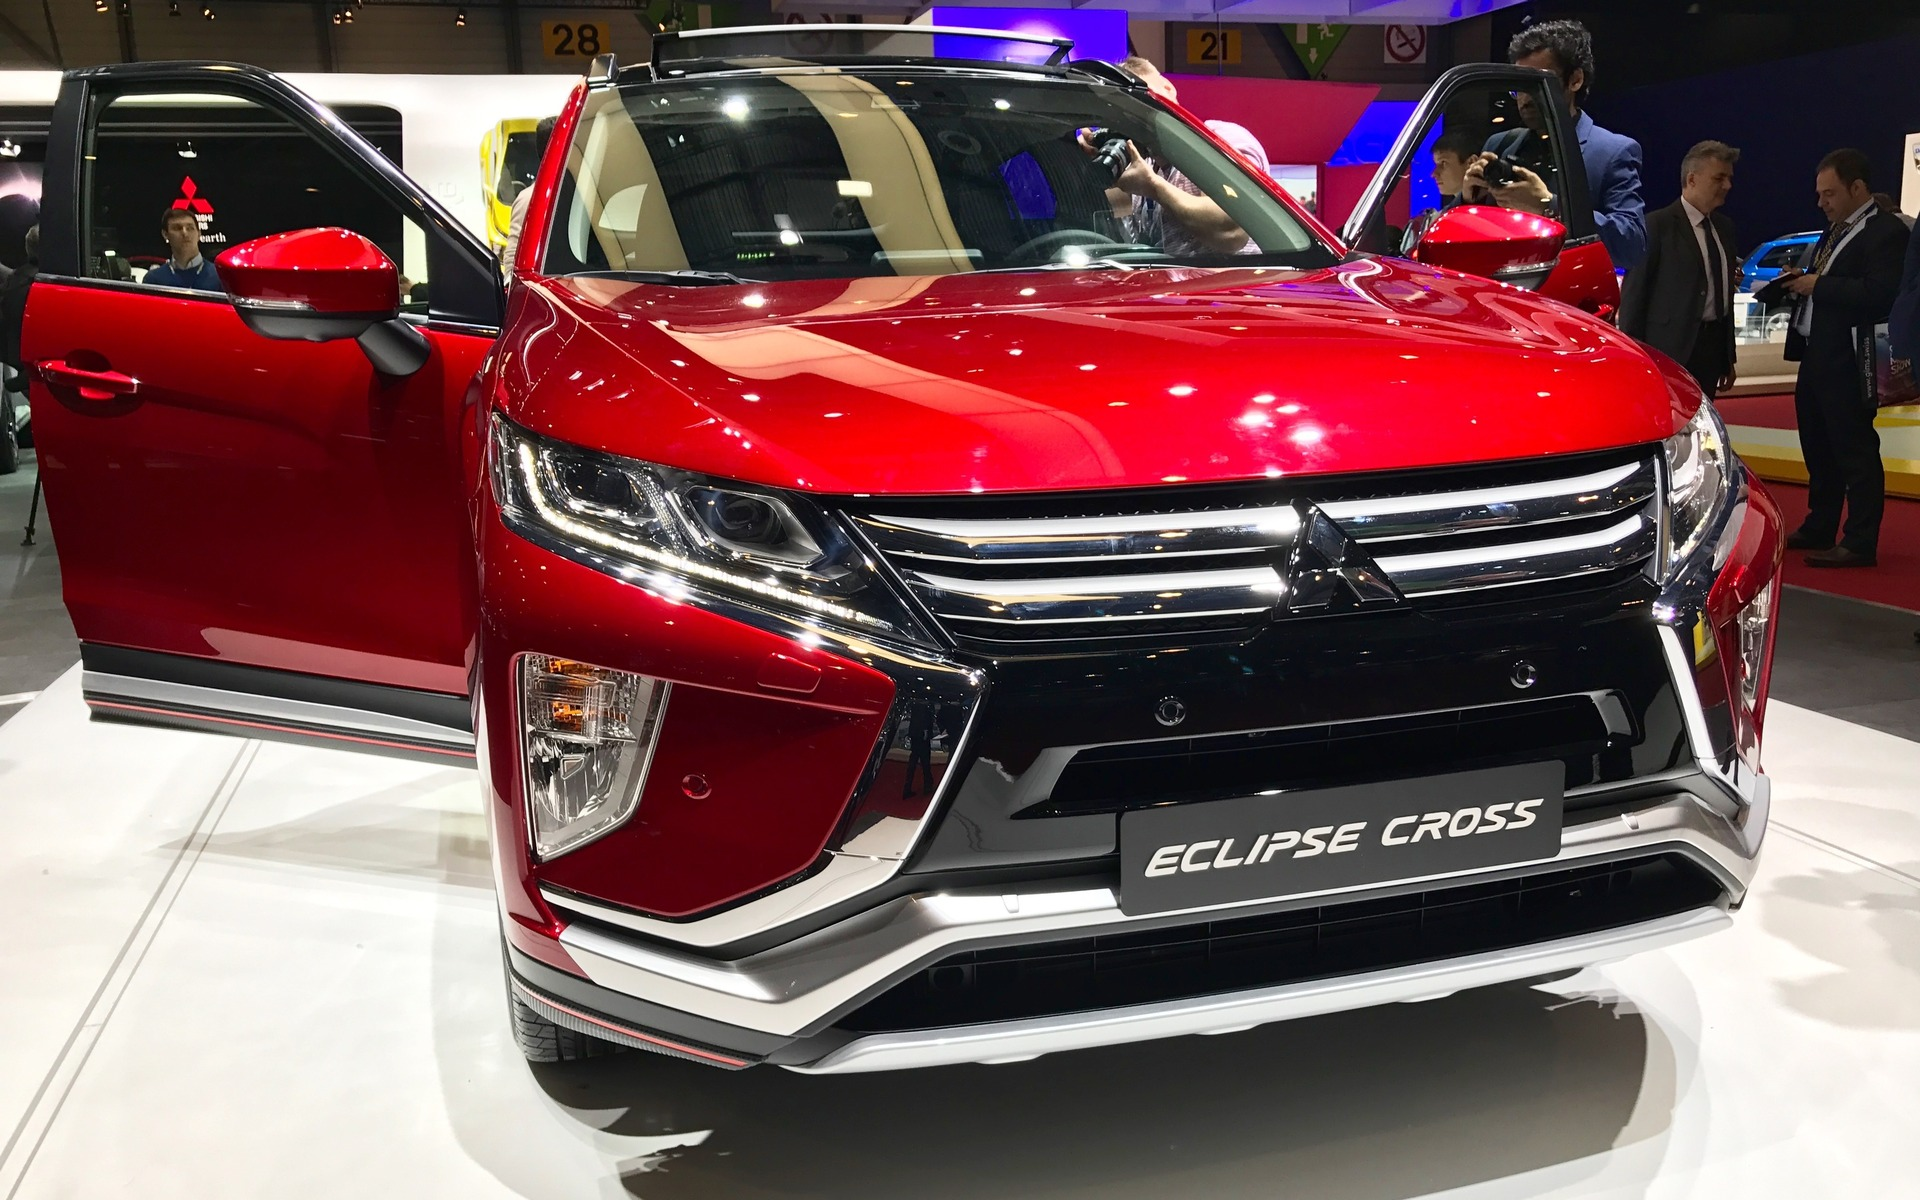 2018 Mitsubishi Eclipse Cross: a New SUV for the Brand - 9/56